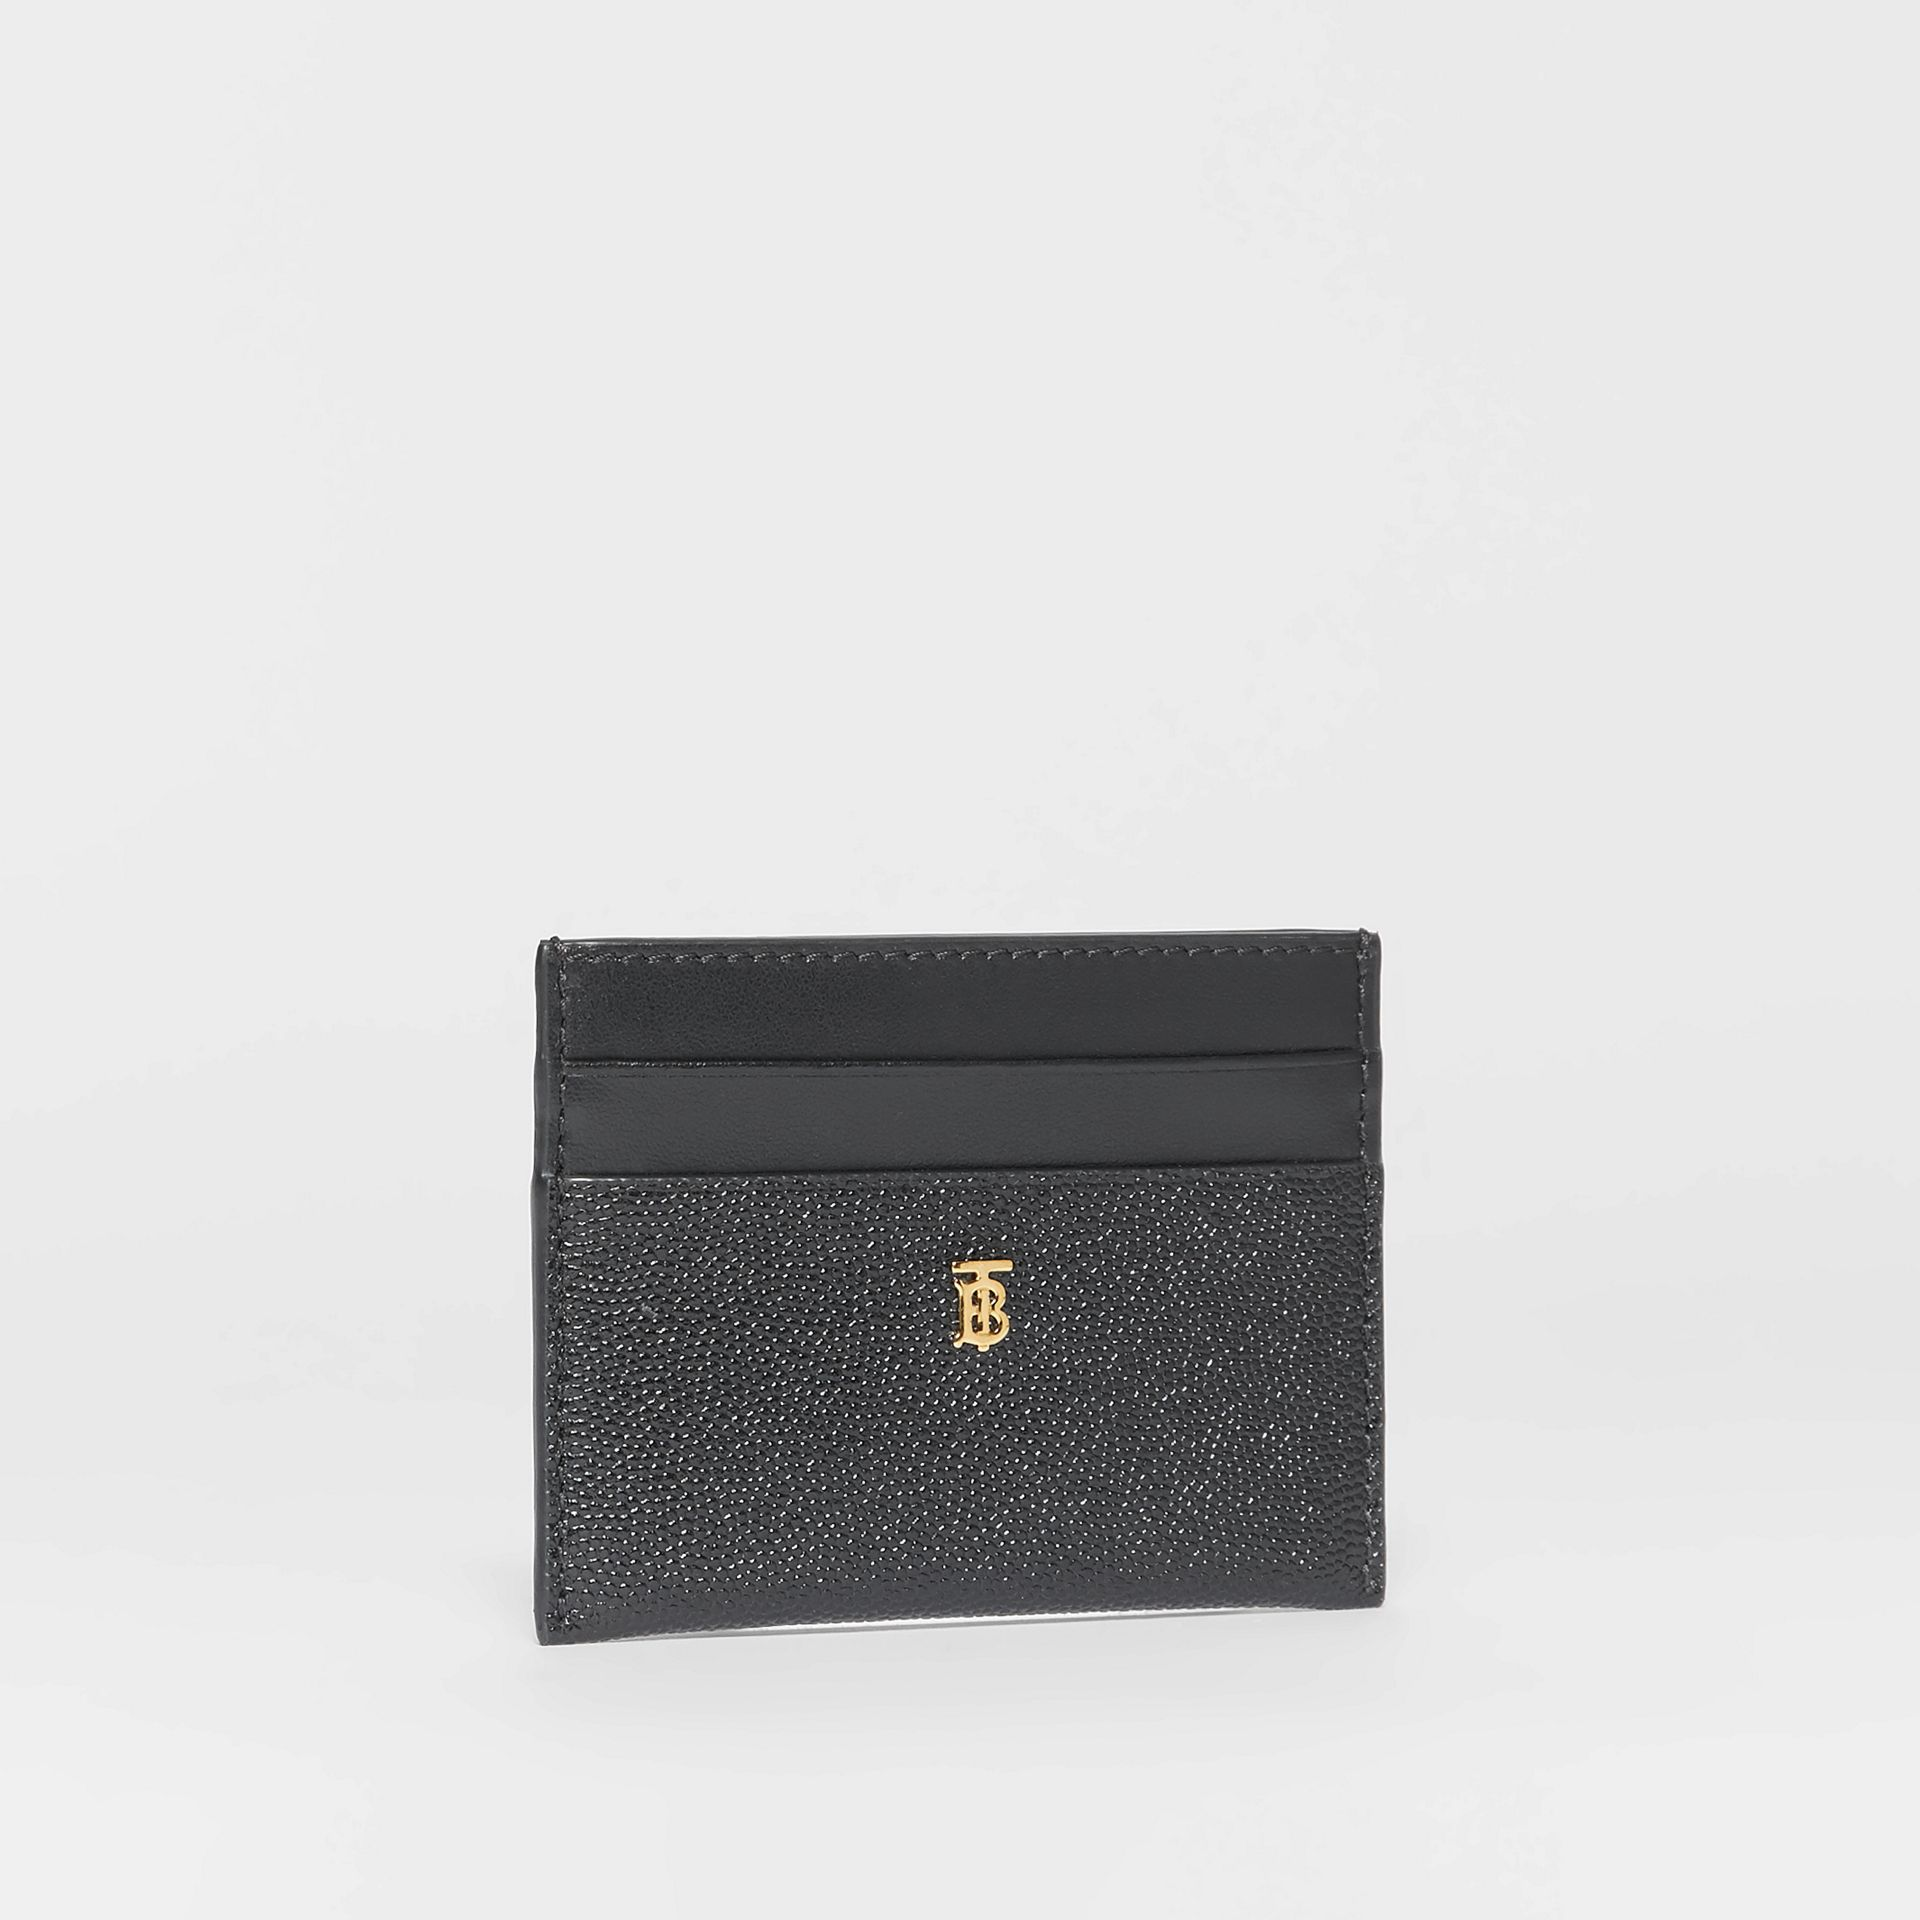 Monogram Motif Leather Card Case in Black - Women | Burberry - gallery image 3